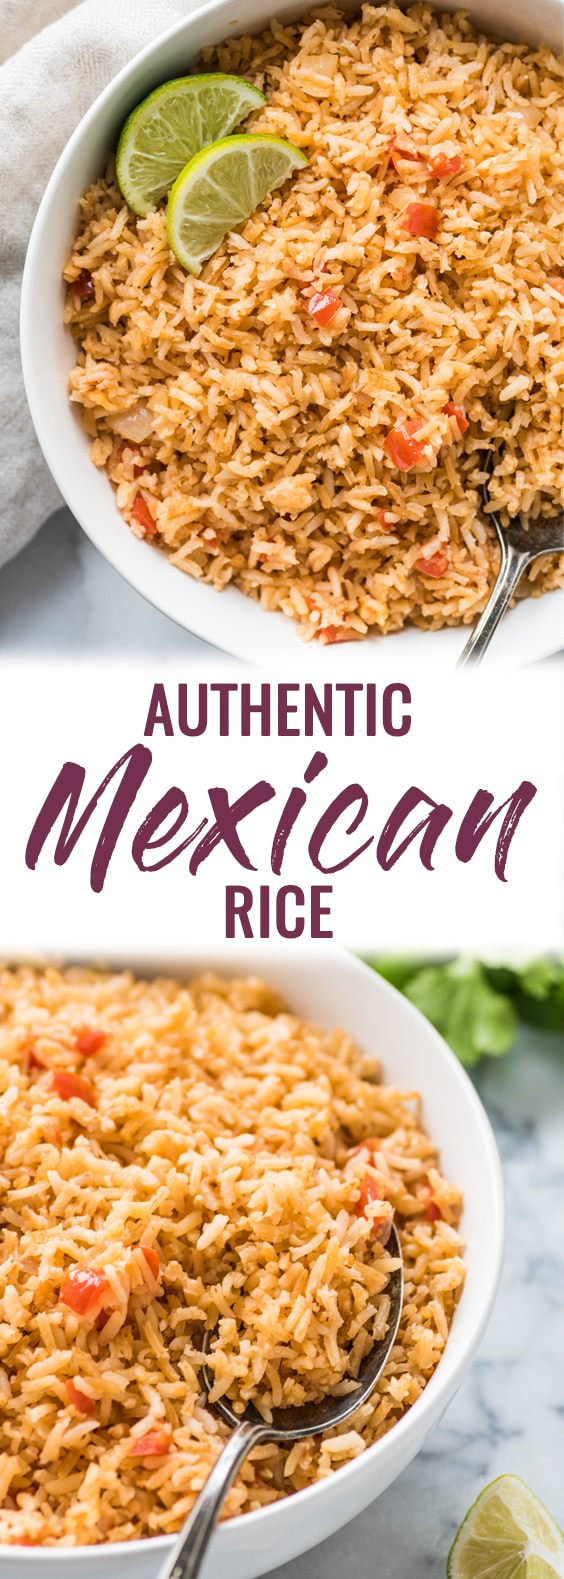 My Mom's Authentic Mexican Rice Recipe is made with simple ingredients like chopped tomatoes, onions and garlic and is the perfect side dish for any meal. #mexicanrice #rice #mexicanfood #vegetarian